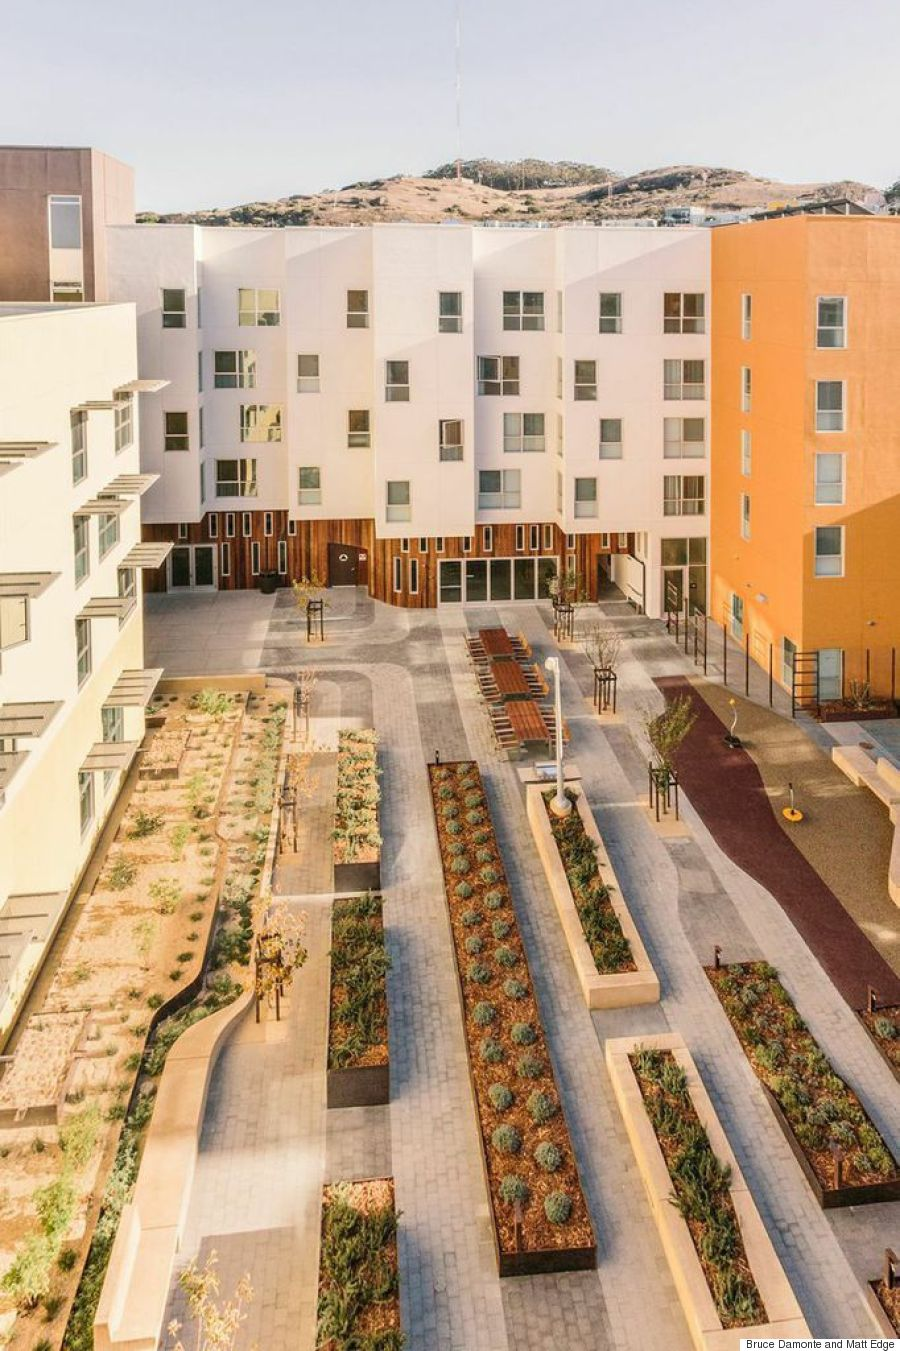 The 10 Best Housing Designs Of 2015, According To Architects | HuffPost